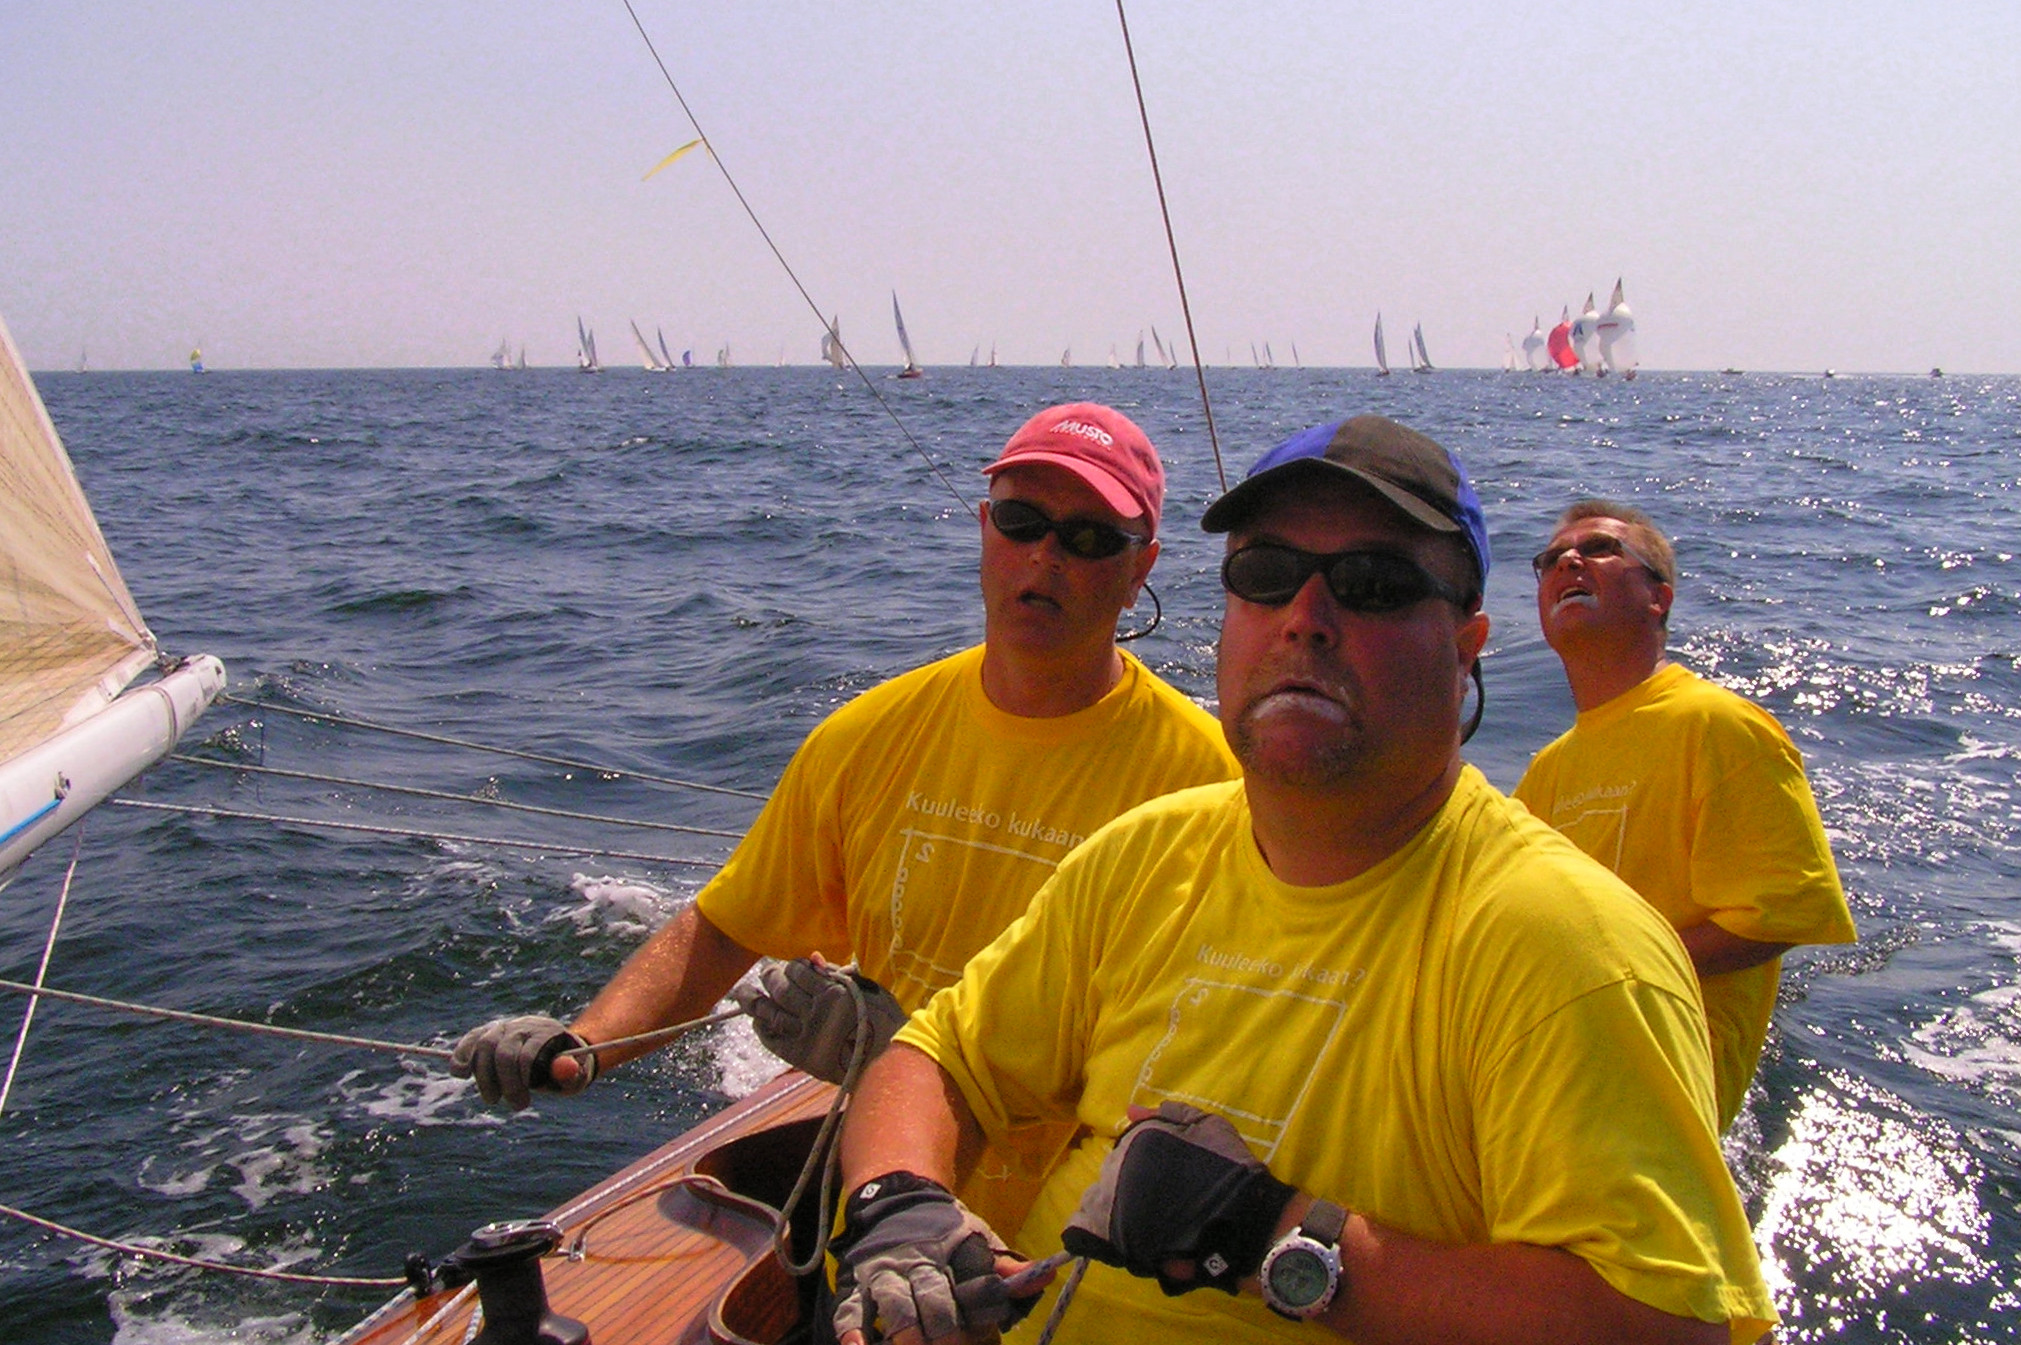 Photos taken from 6mR FIN-60 Off Course during the races in Hanko Regatta 2006.